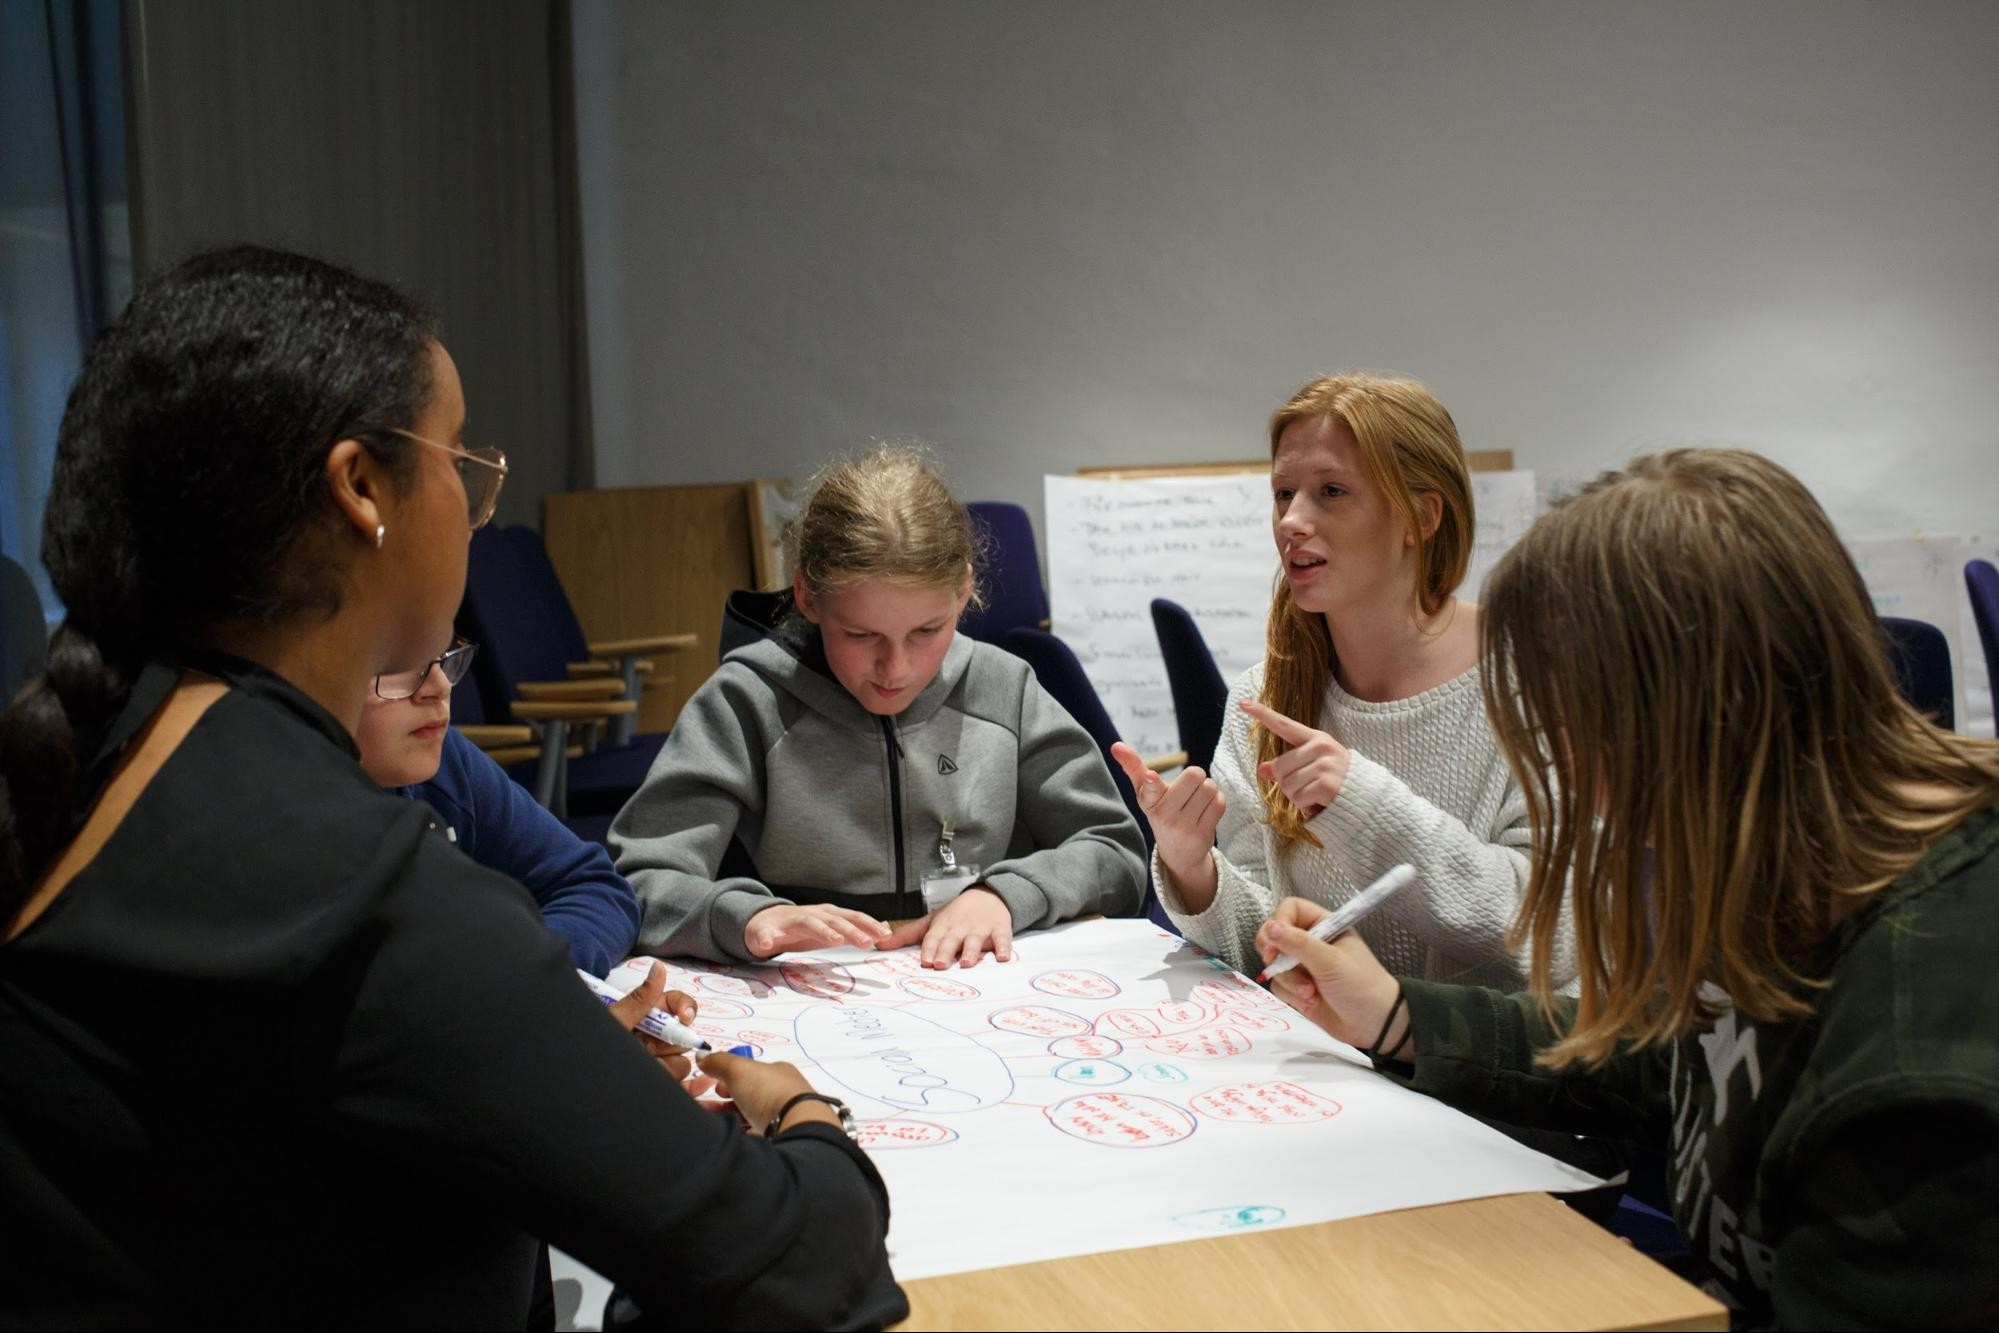 Five students sit around a table and discuss.